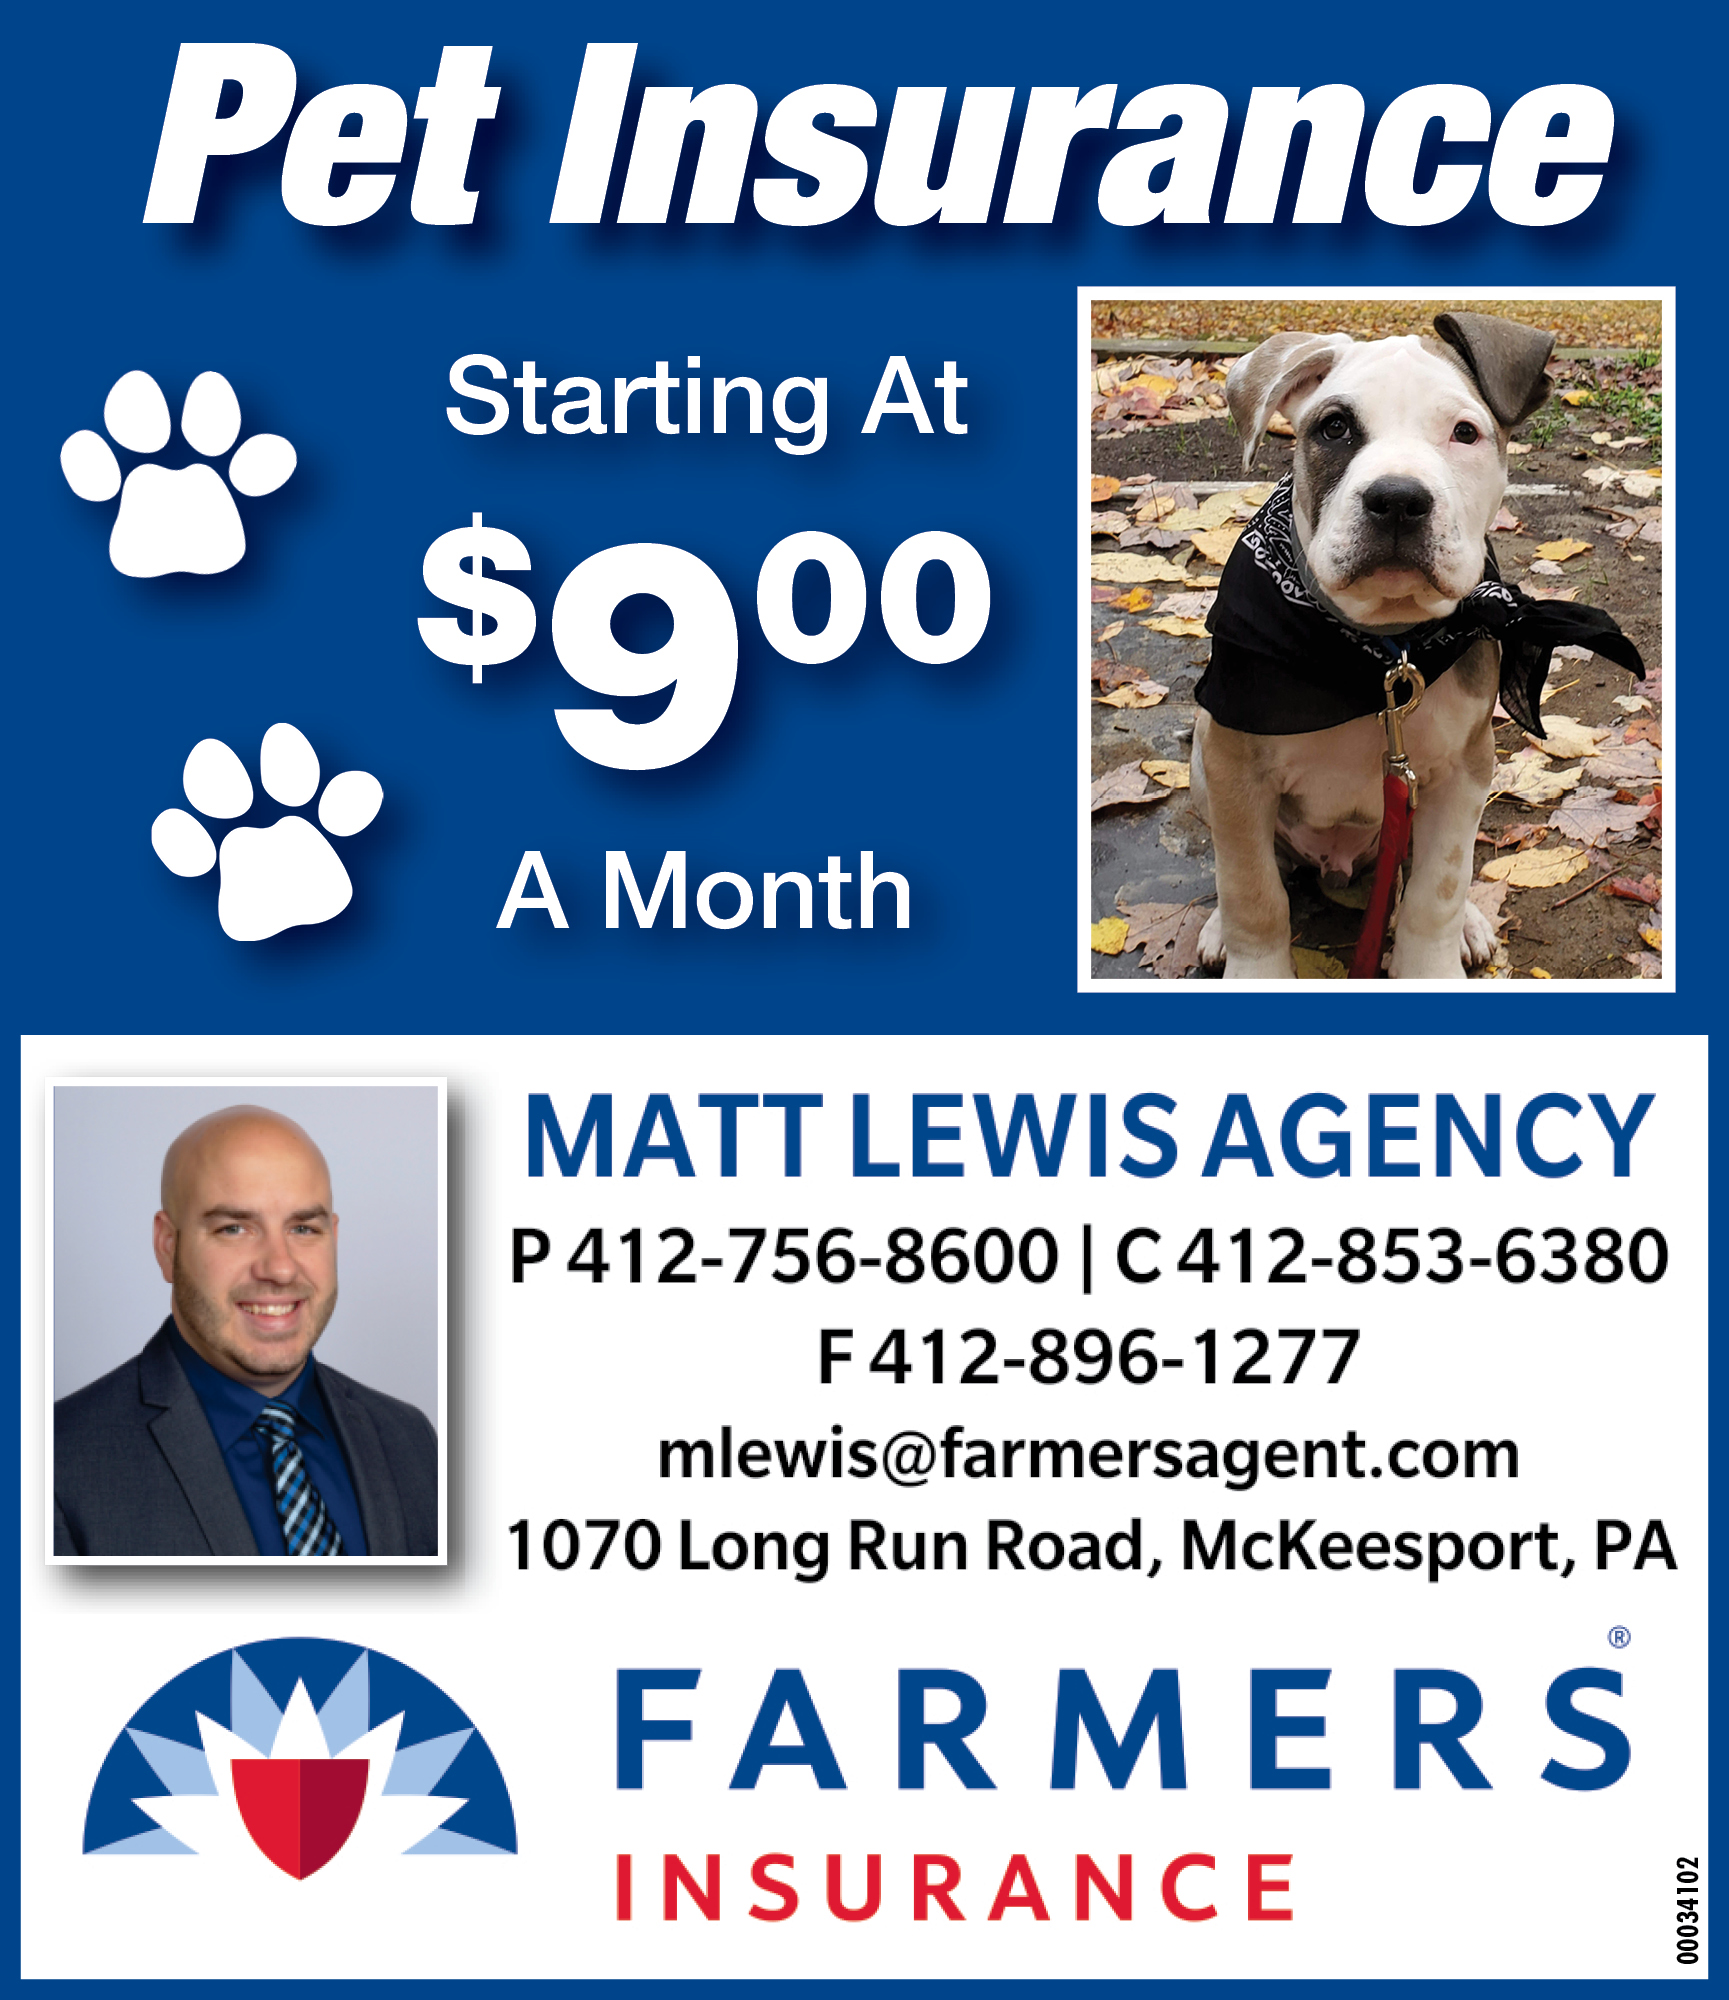 00034102_Farmers Insurance_2x4_Mck pg.